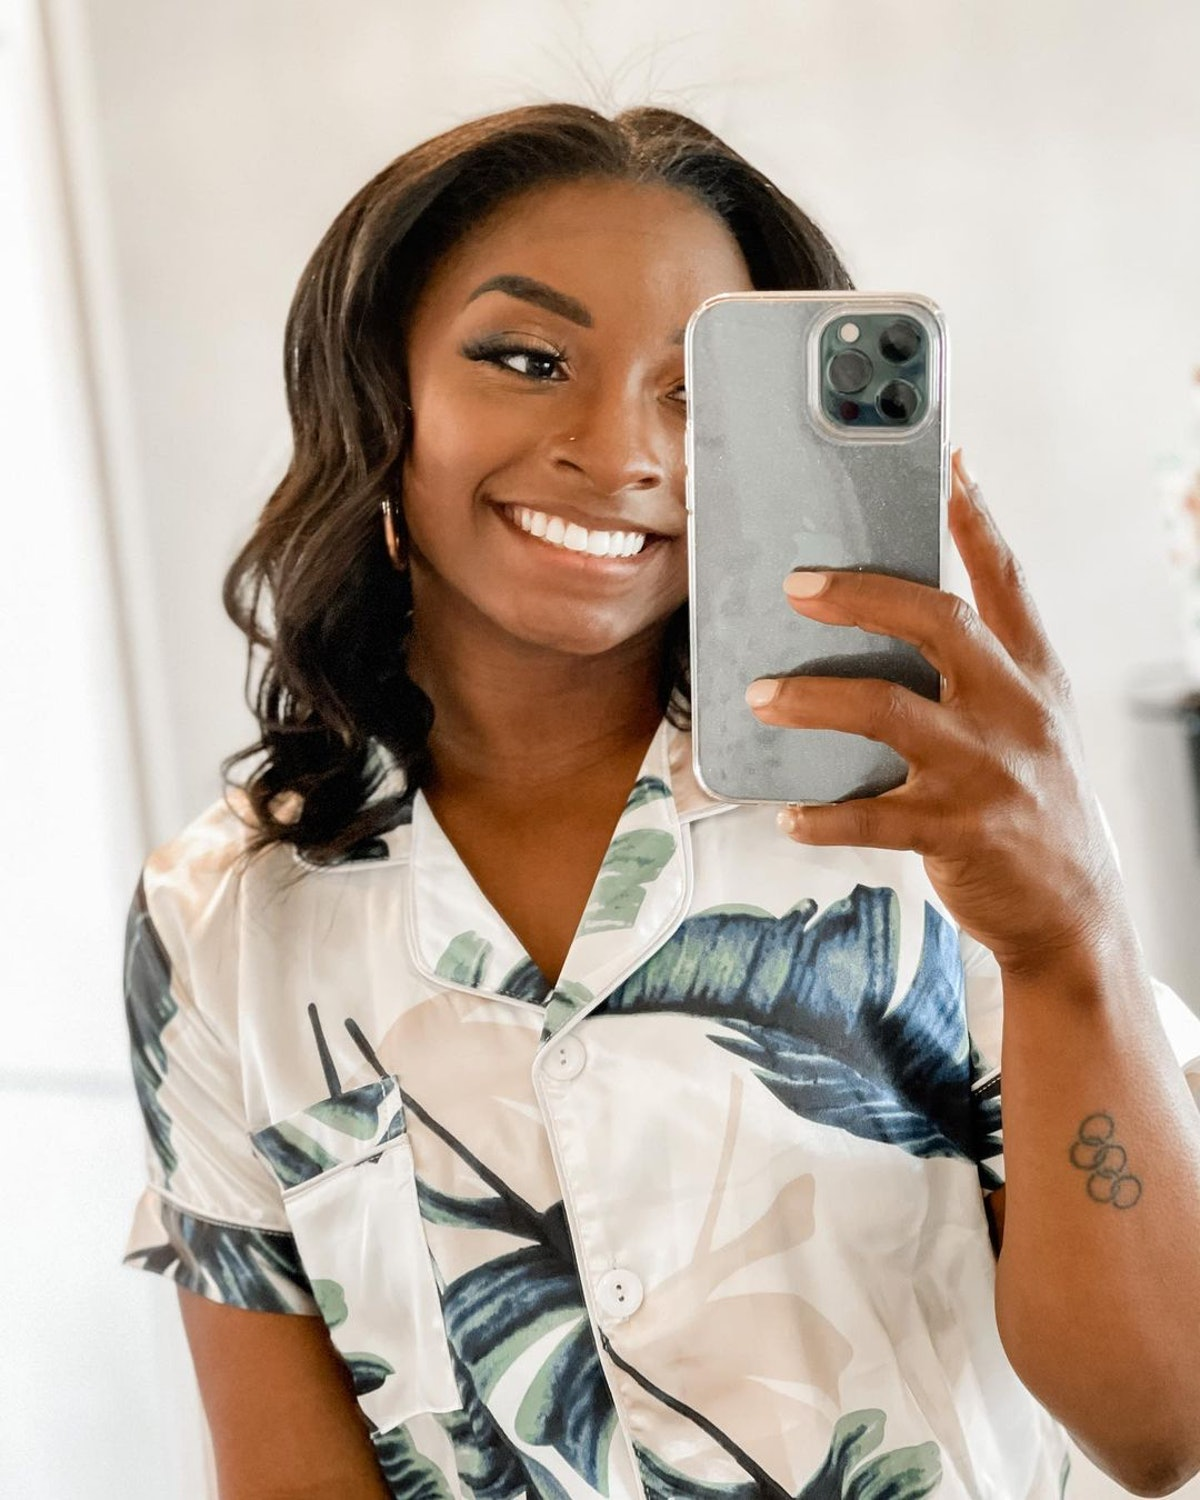 Simone Biles with curled hair taking mirror selfie and smiling